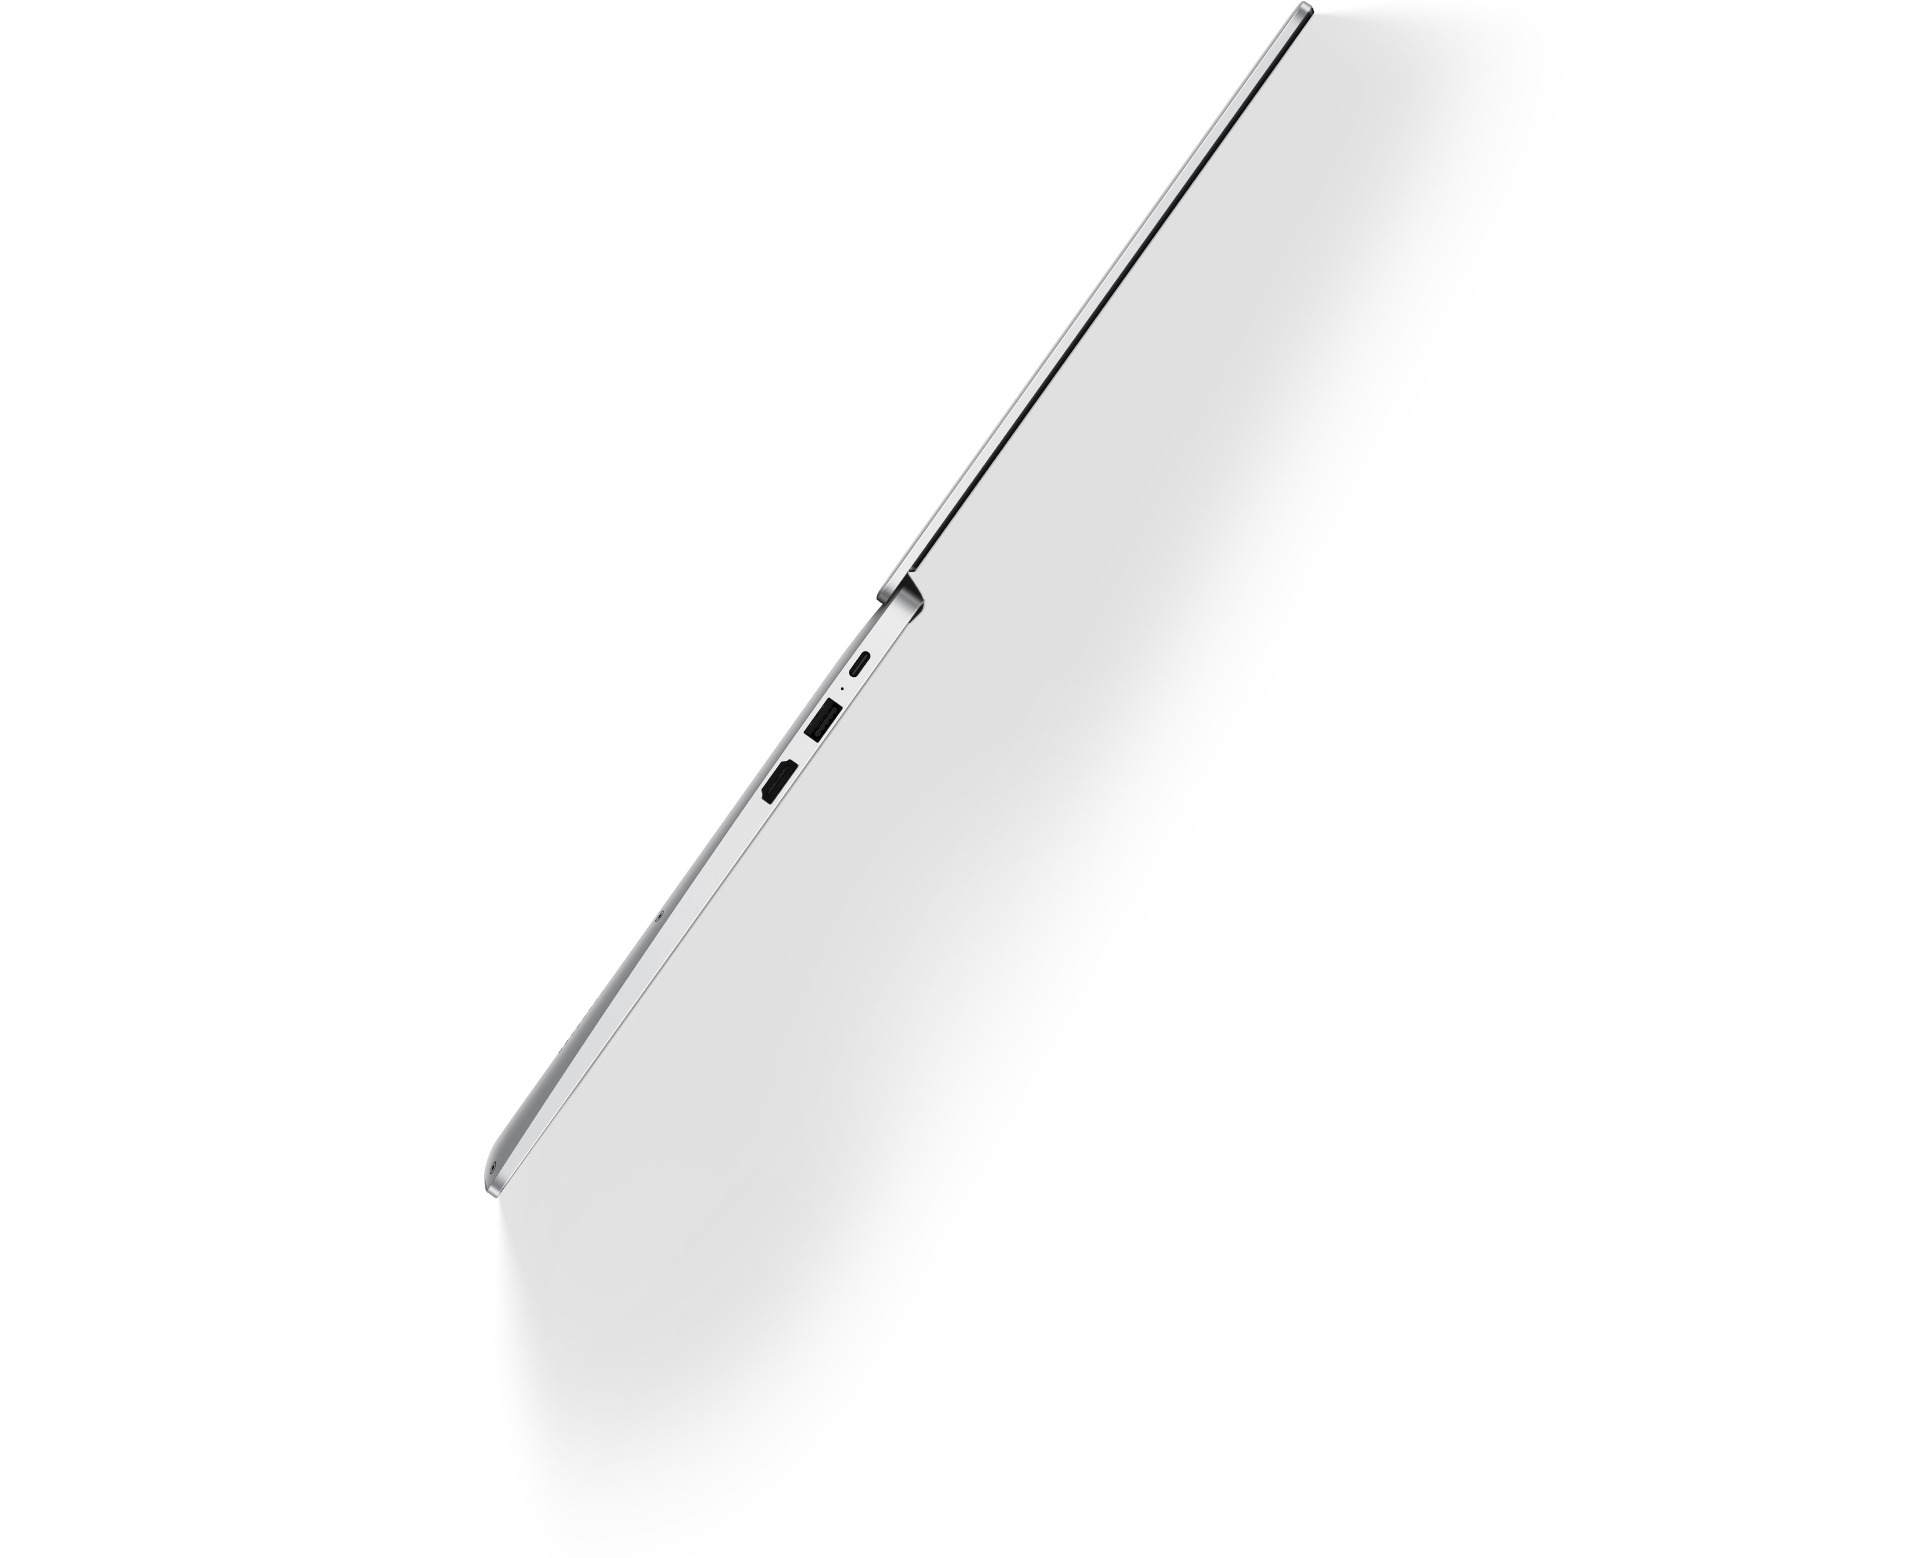 HUAWEI MateBook D 14 AMD 2020 ID Design